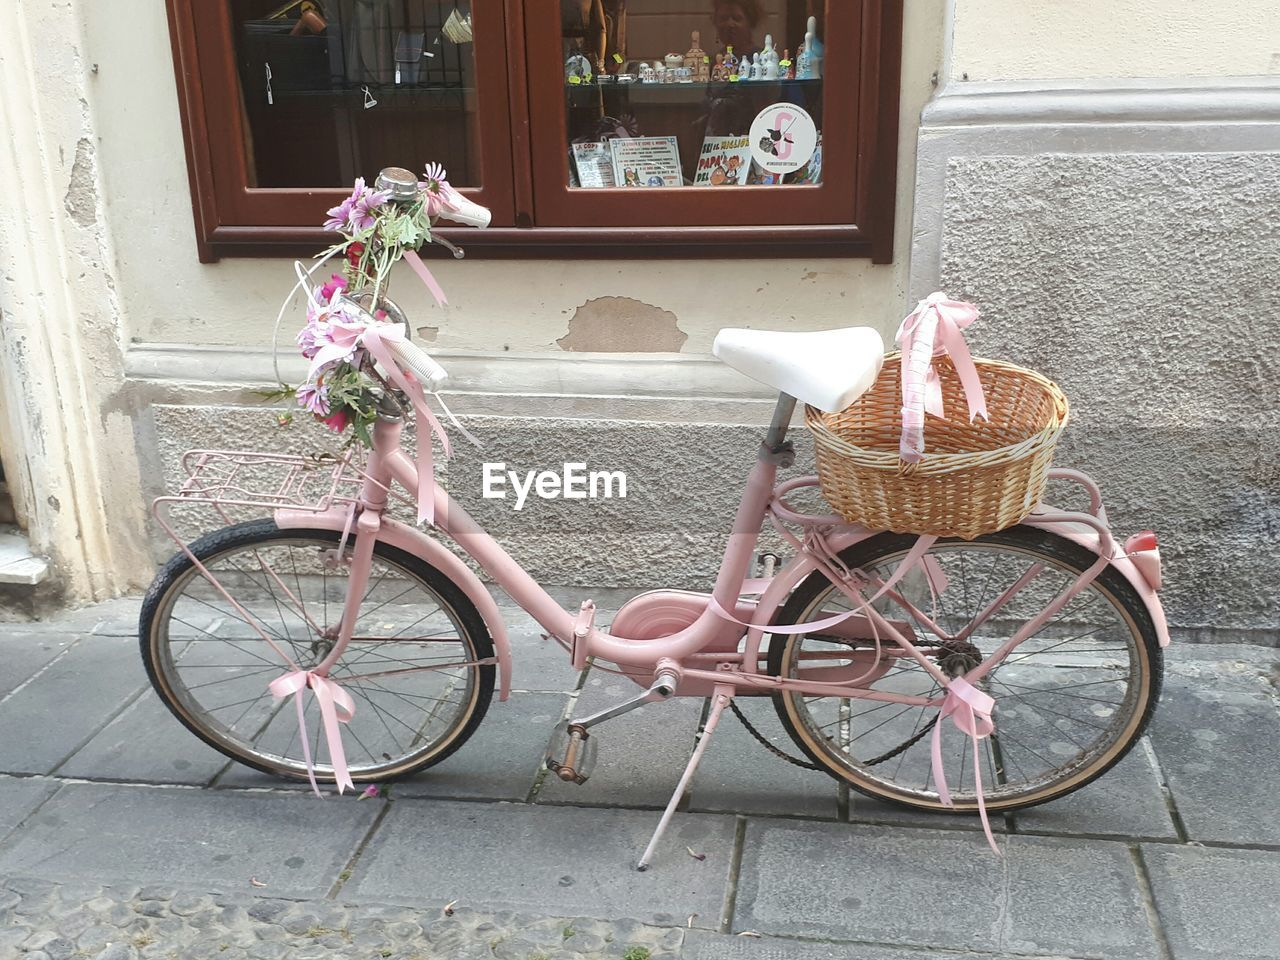 bicycle, basket, transportation, architecture, day, mode of transport, outdoors, built structure, window, building exterior, land vehicle, stationary, no people, bicycle basket, flower